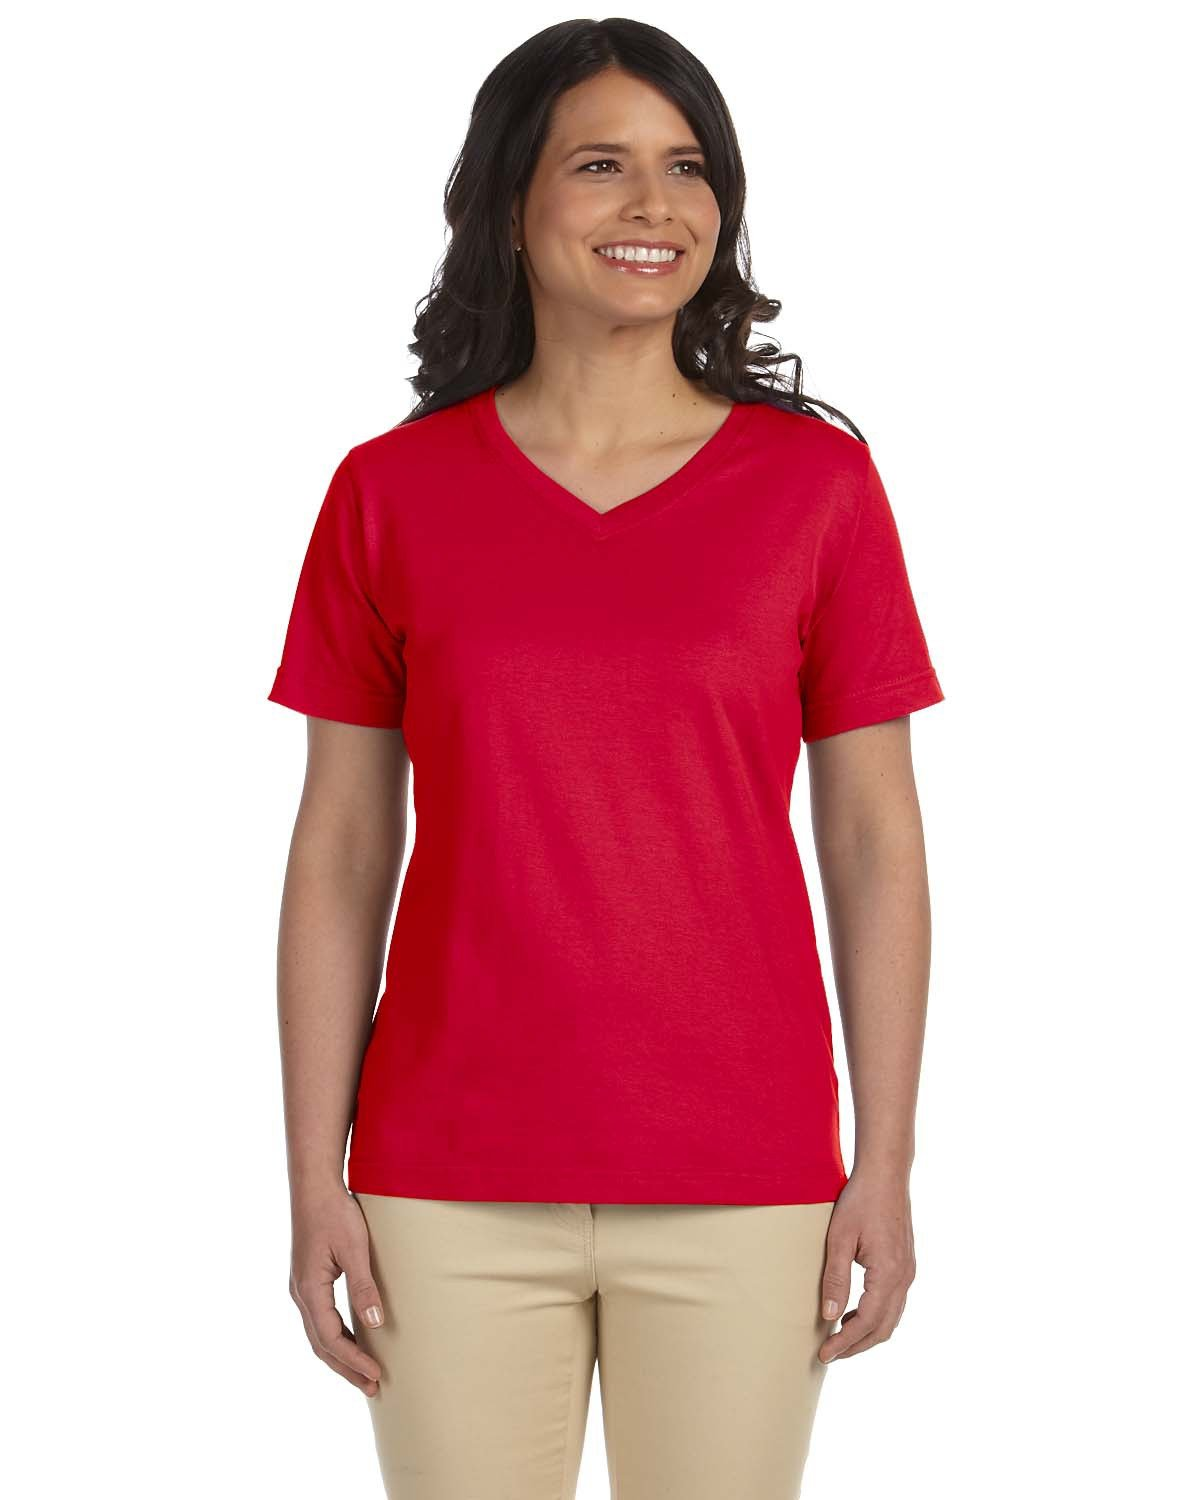 LAT Ladies' Premium Jersey V-Neck T-Shirt RED